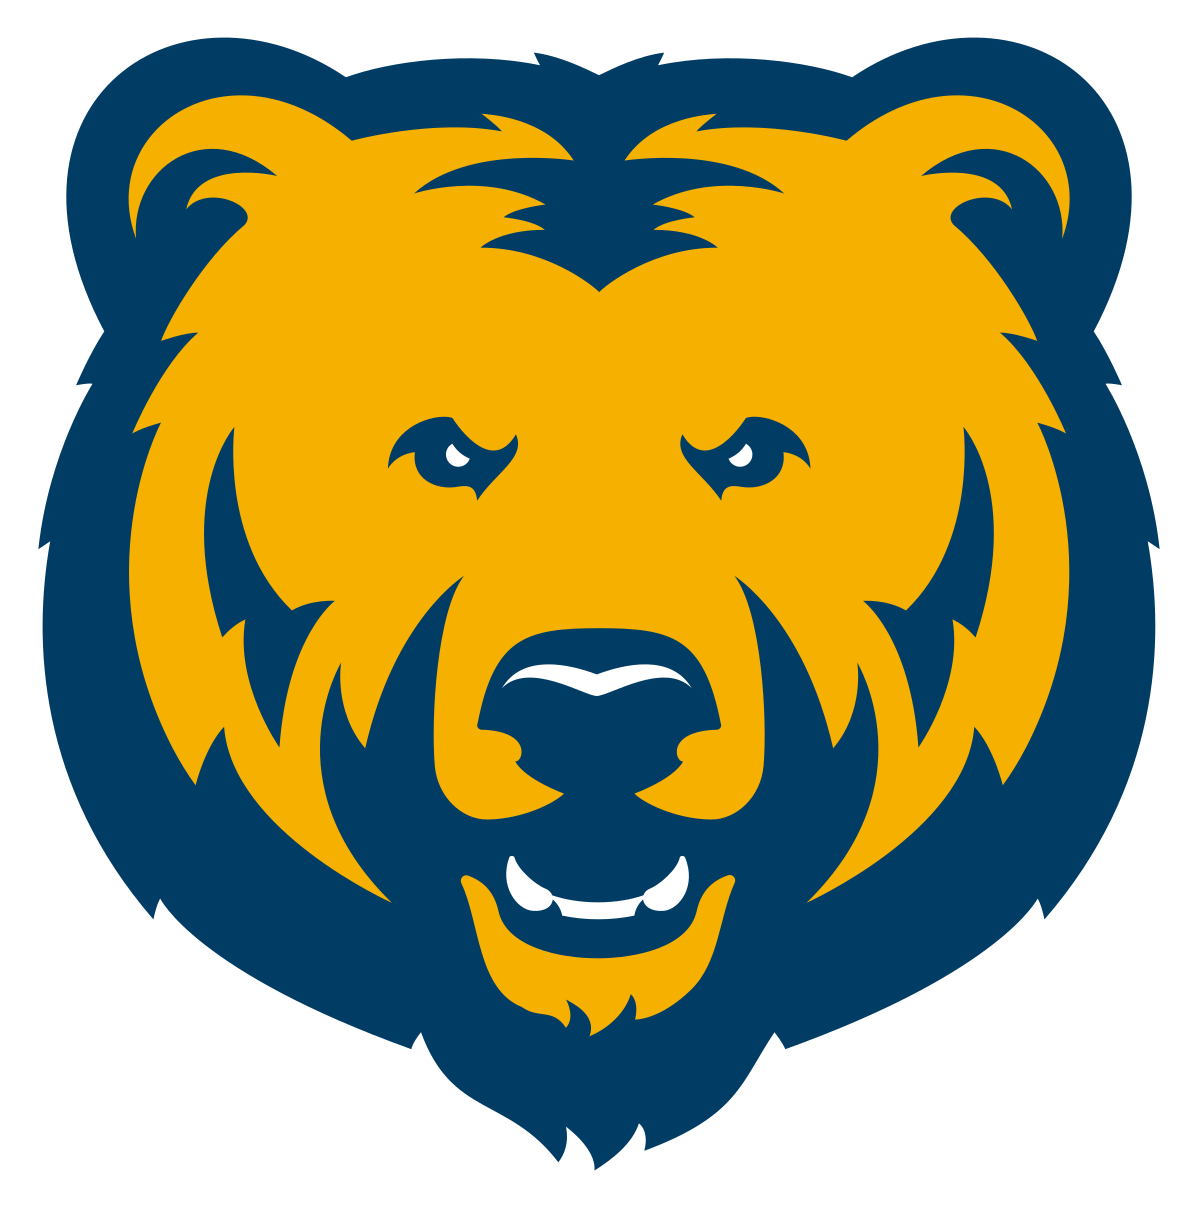 Lady mountaineers basketball clipart jpg royalty free library Northern Colorado Bears - Wikipedia jpg royalty free library